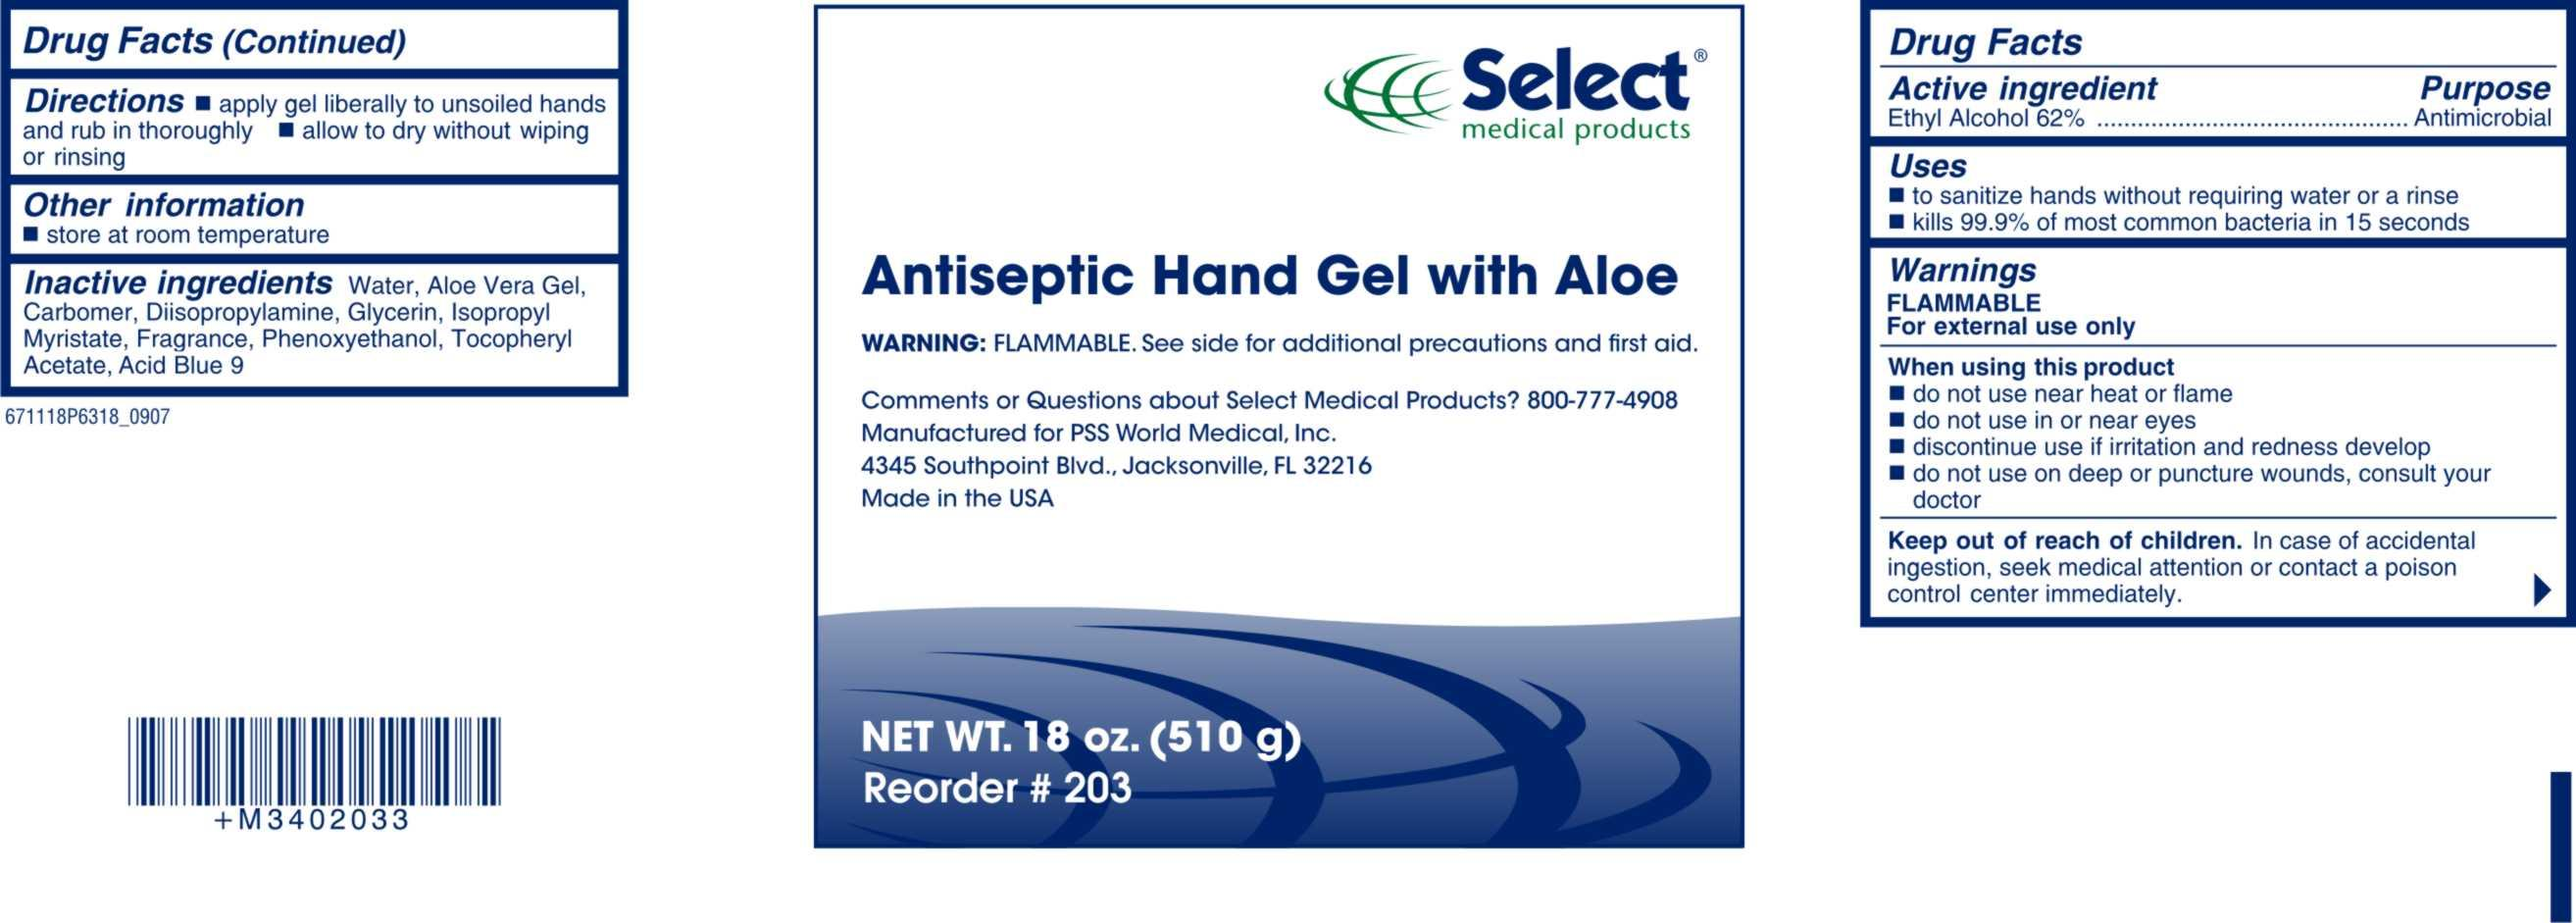 Antiseptic Hand Gel with Aloe 6711 18oz